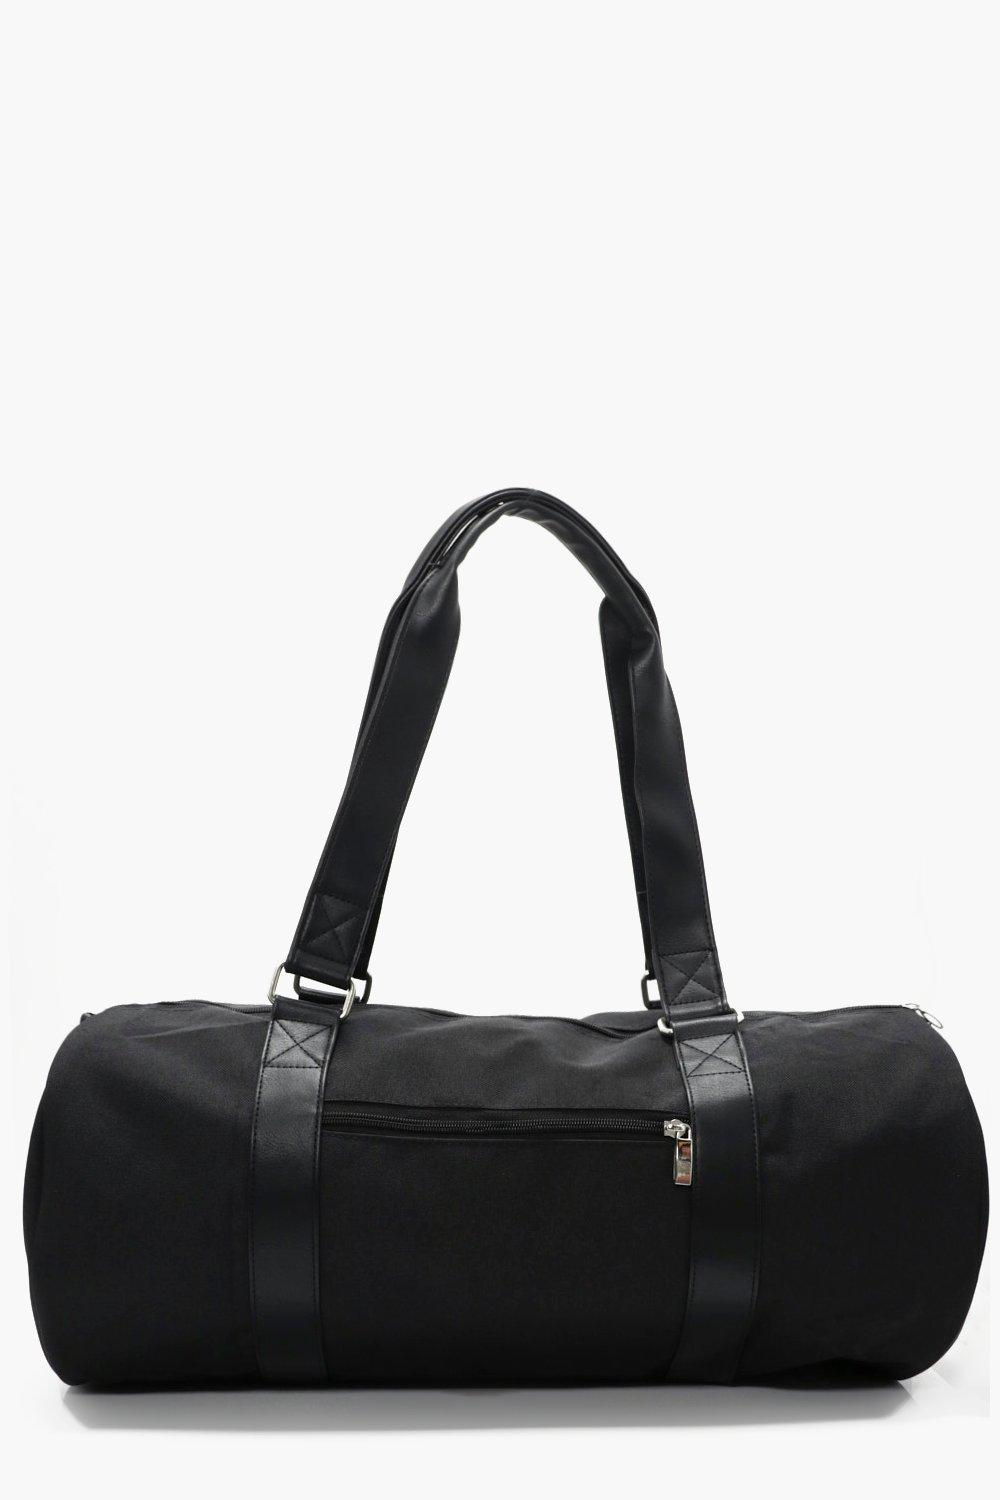 Duffle Bag - black - Black Duffle Bag - black